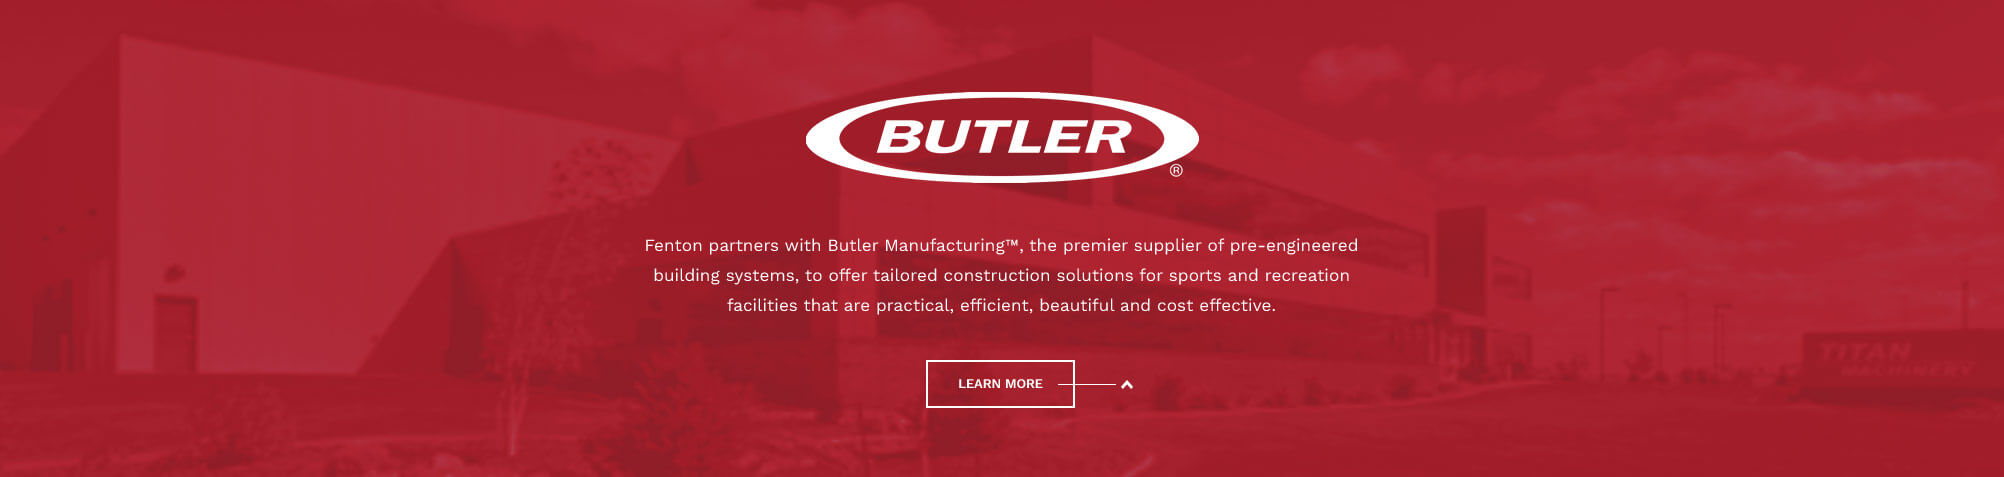 Butler - Sports and Recreational Buildings